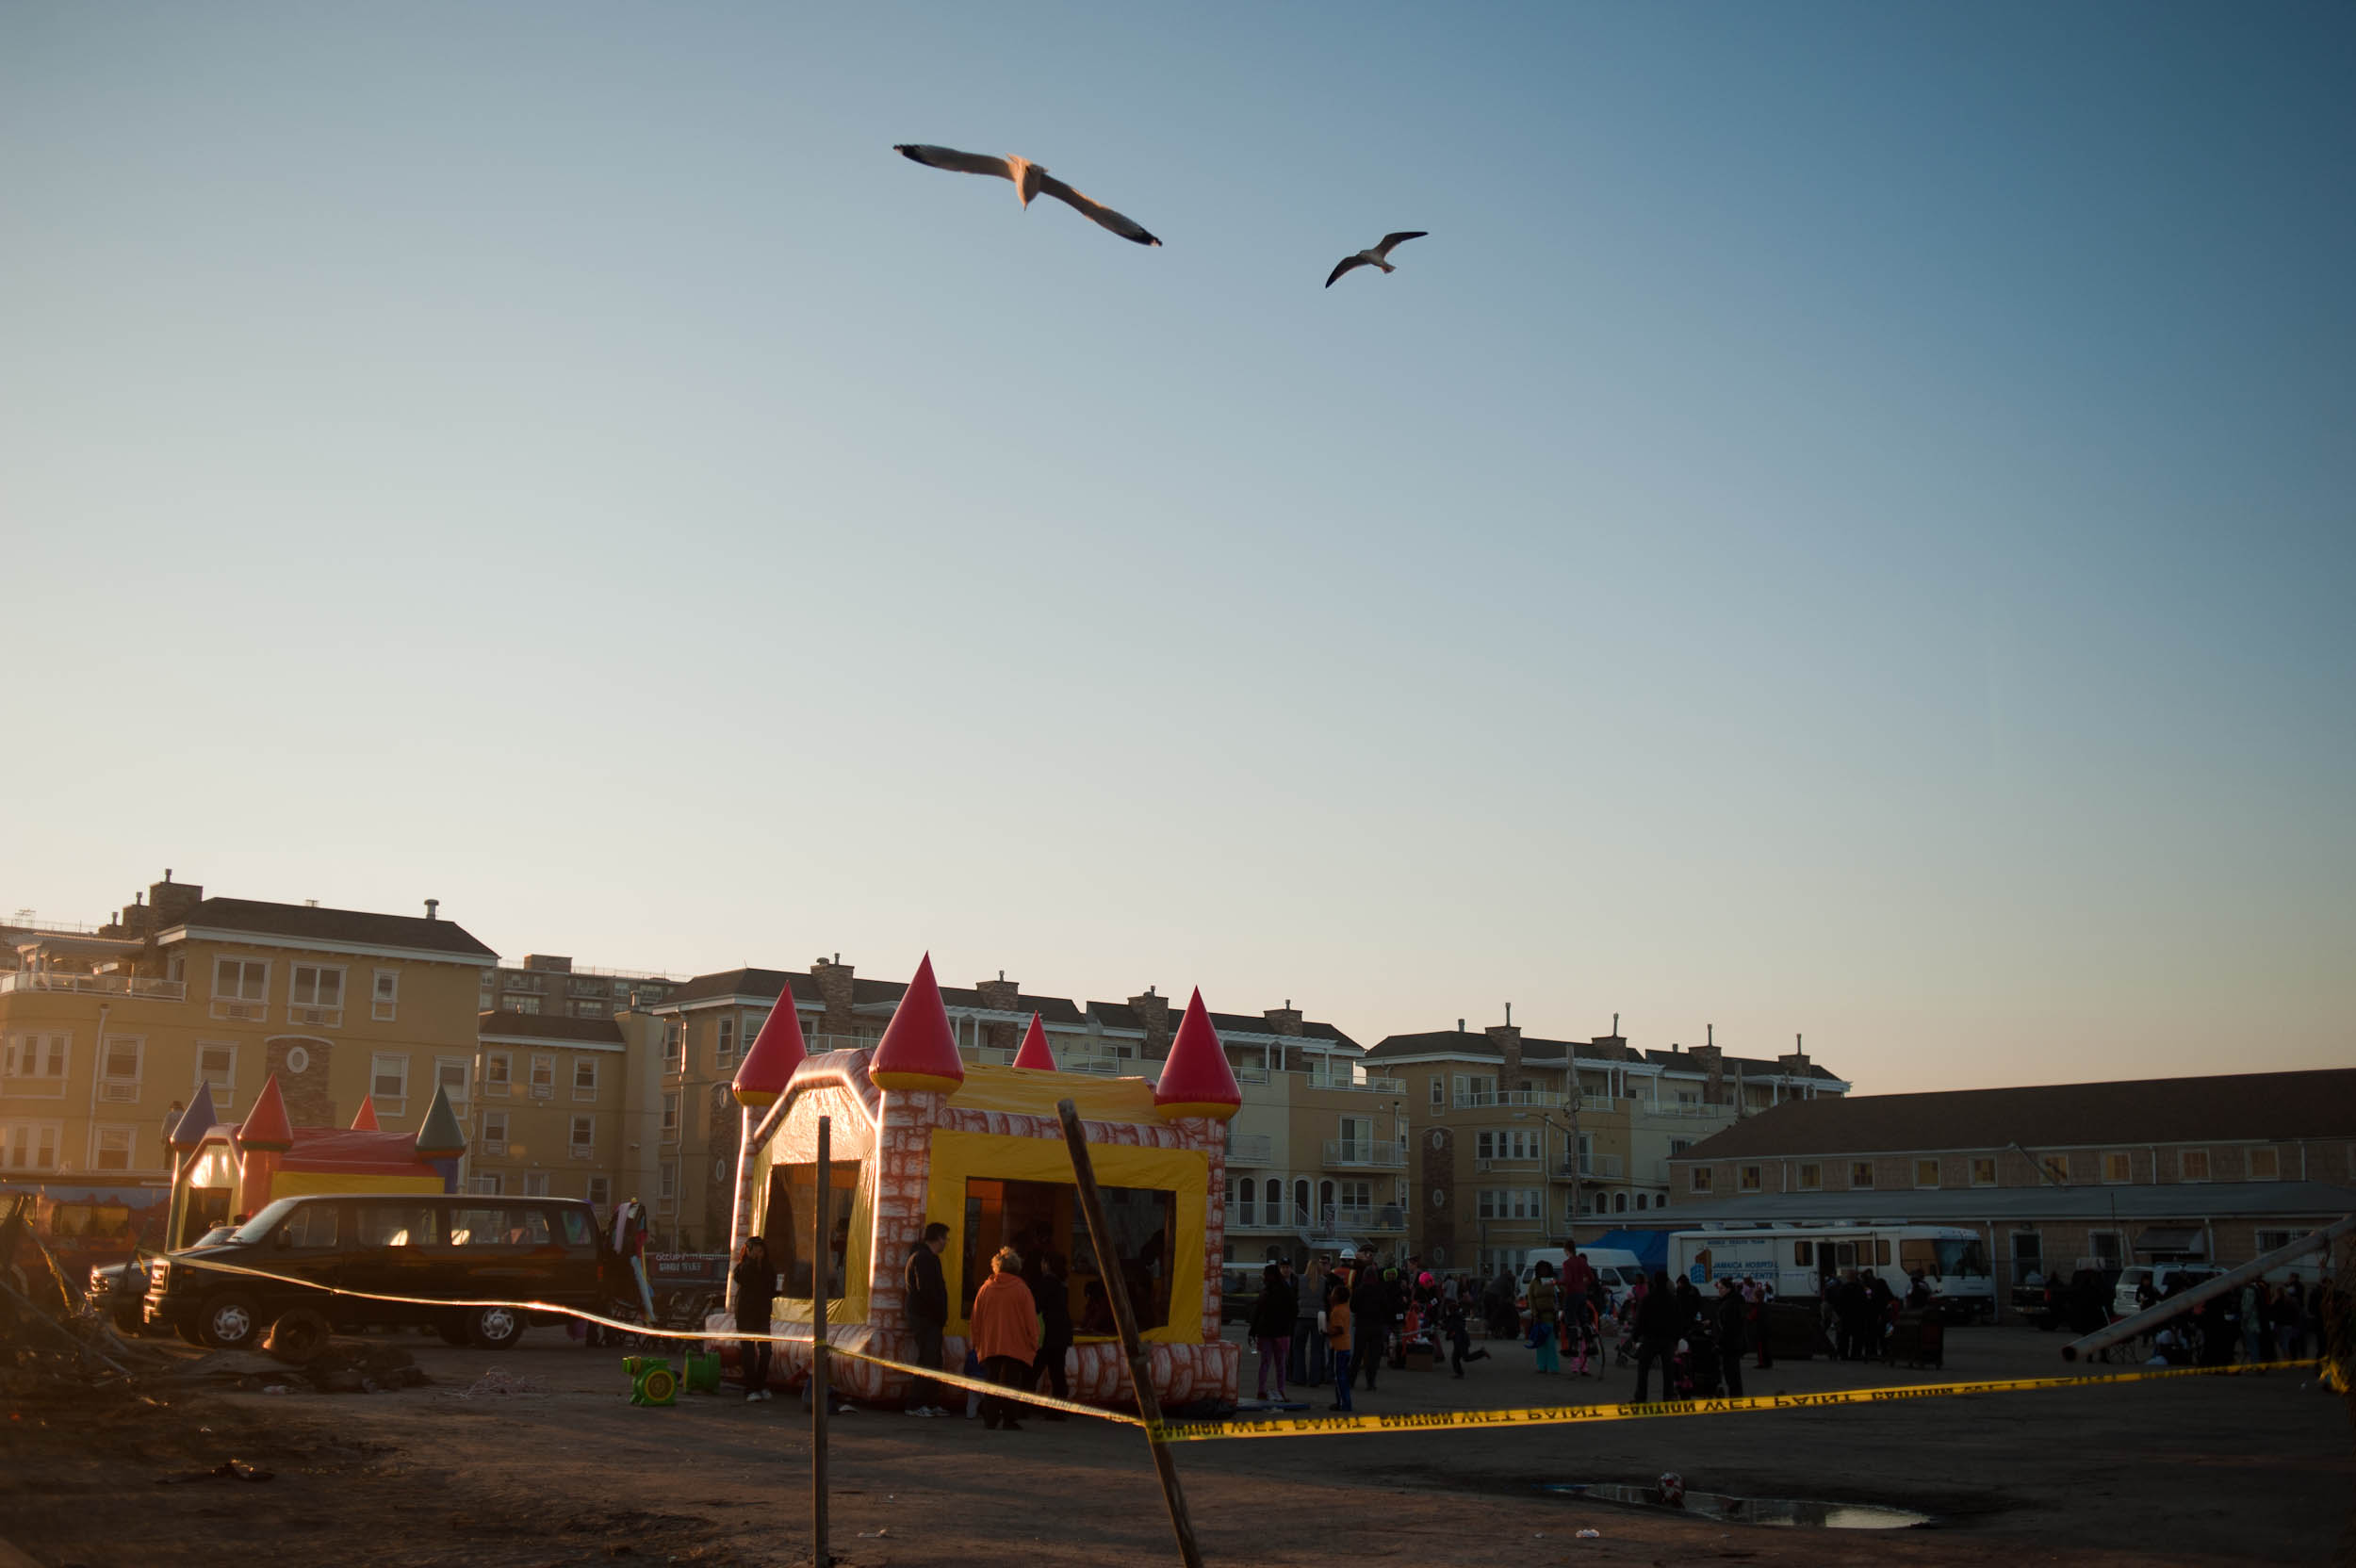 (November 17th 2012) Three weeks after Hurricane Sandy, grassroots organizations held a carnival for the children of Far Rockaway, giving them a break from the wreckage and destruction that surrounded them. As the sun sets, many of them leave the cheerful event only to return to their homes that were still without power. (2 of 3)